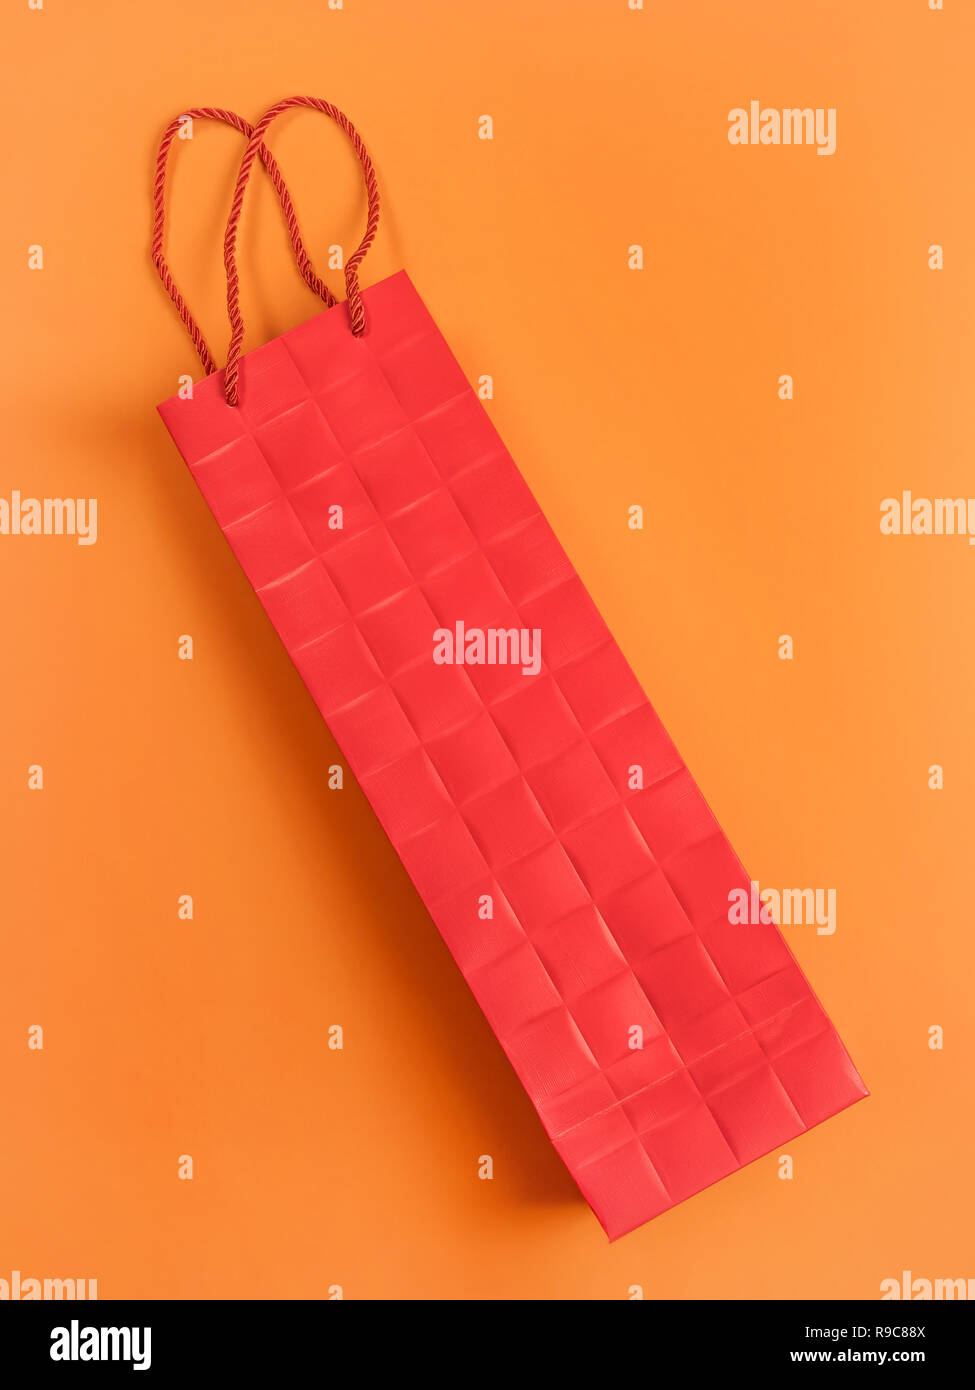 Red cardboard gift bag on orange. Sparse abstract composition. - Stock Image